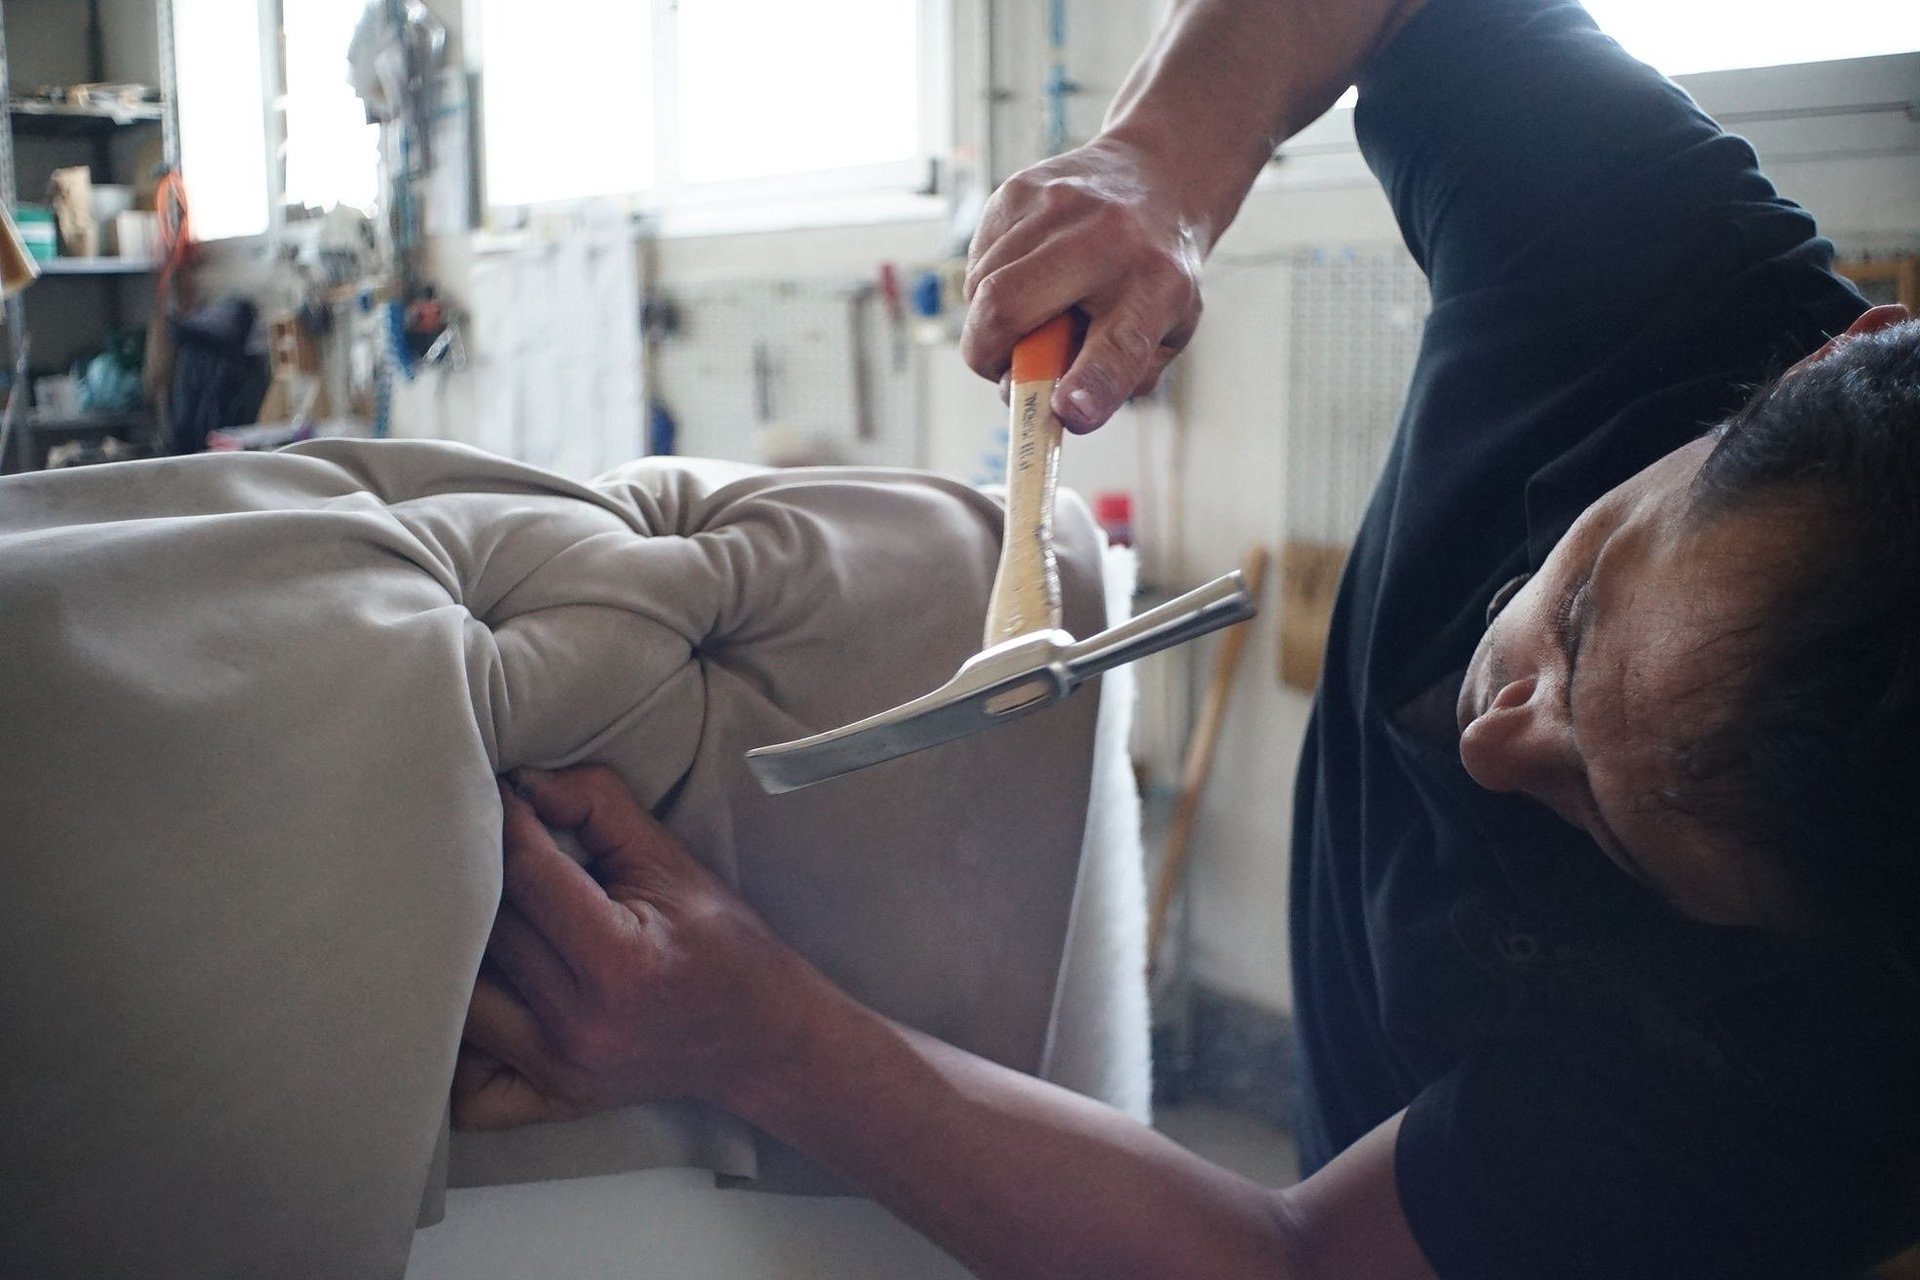 Sofa Set Repair Services In Porur Sofa And Furniture Disassembly Reassembly Reupholstery